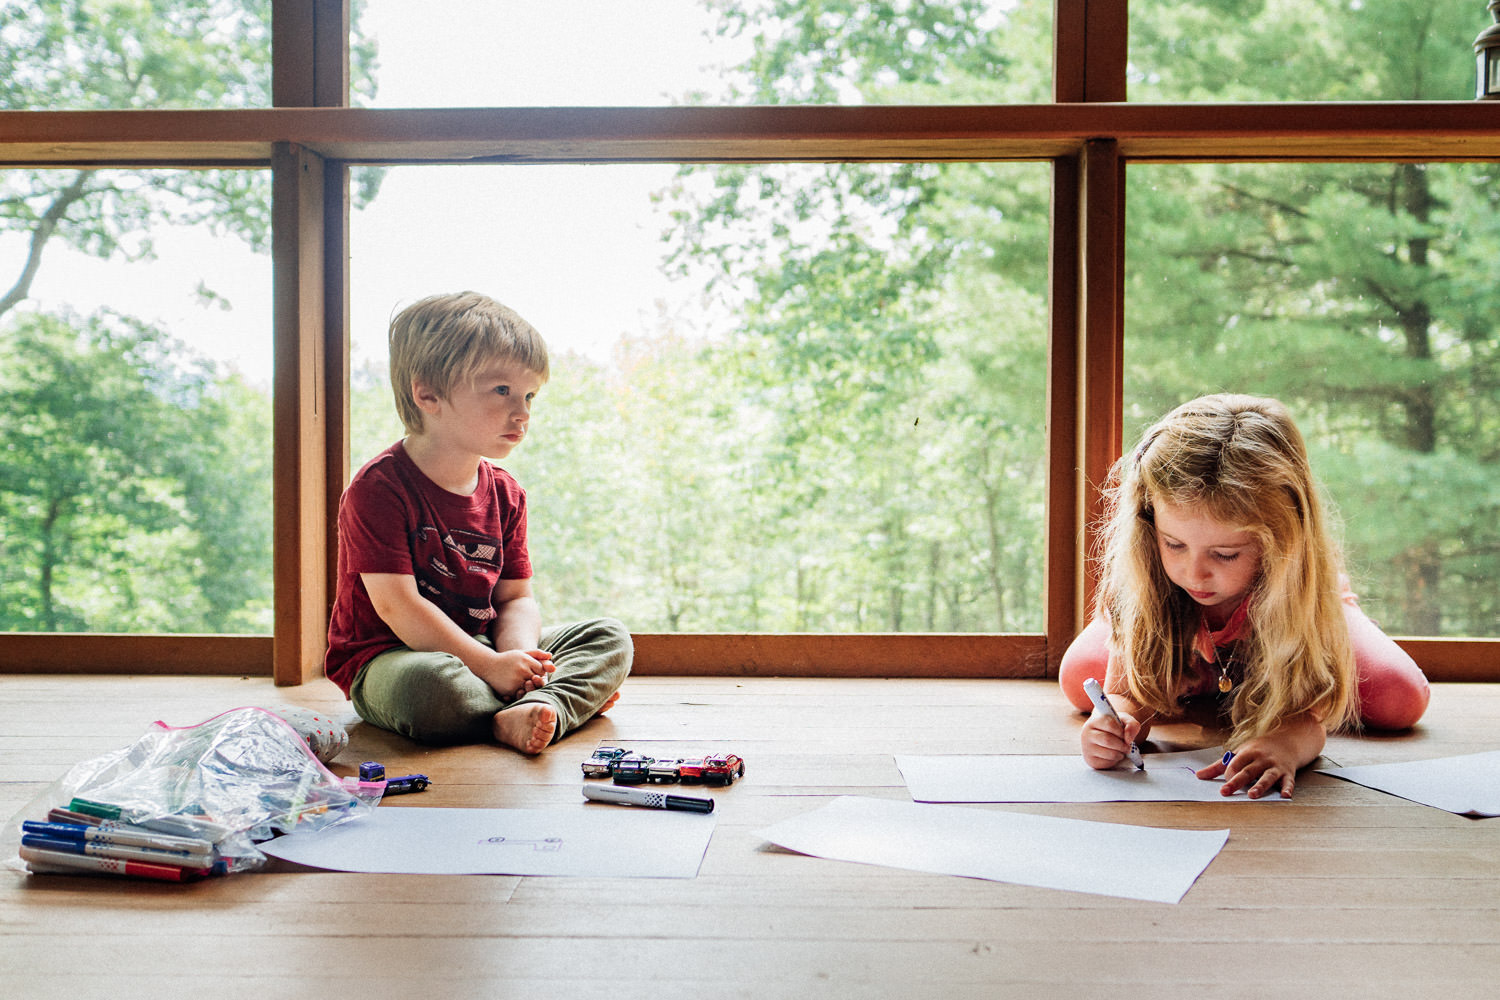 Two kids draw pictures on the floor of a screened in porch.